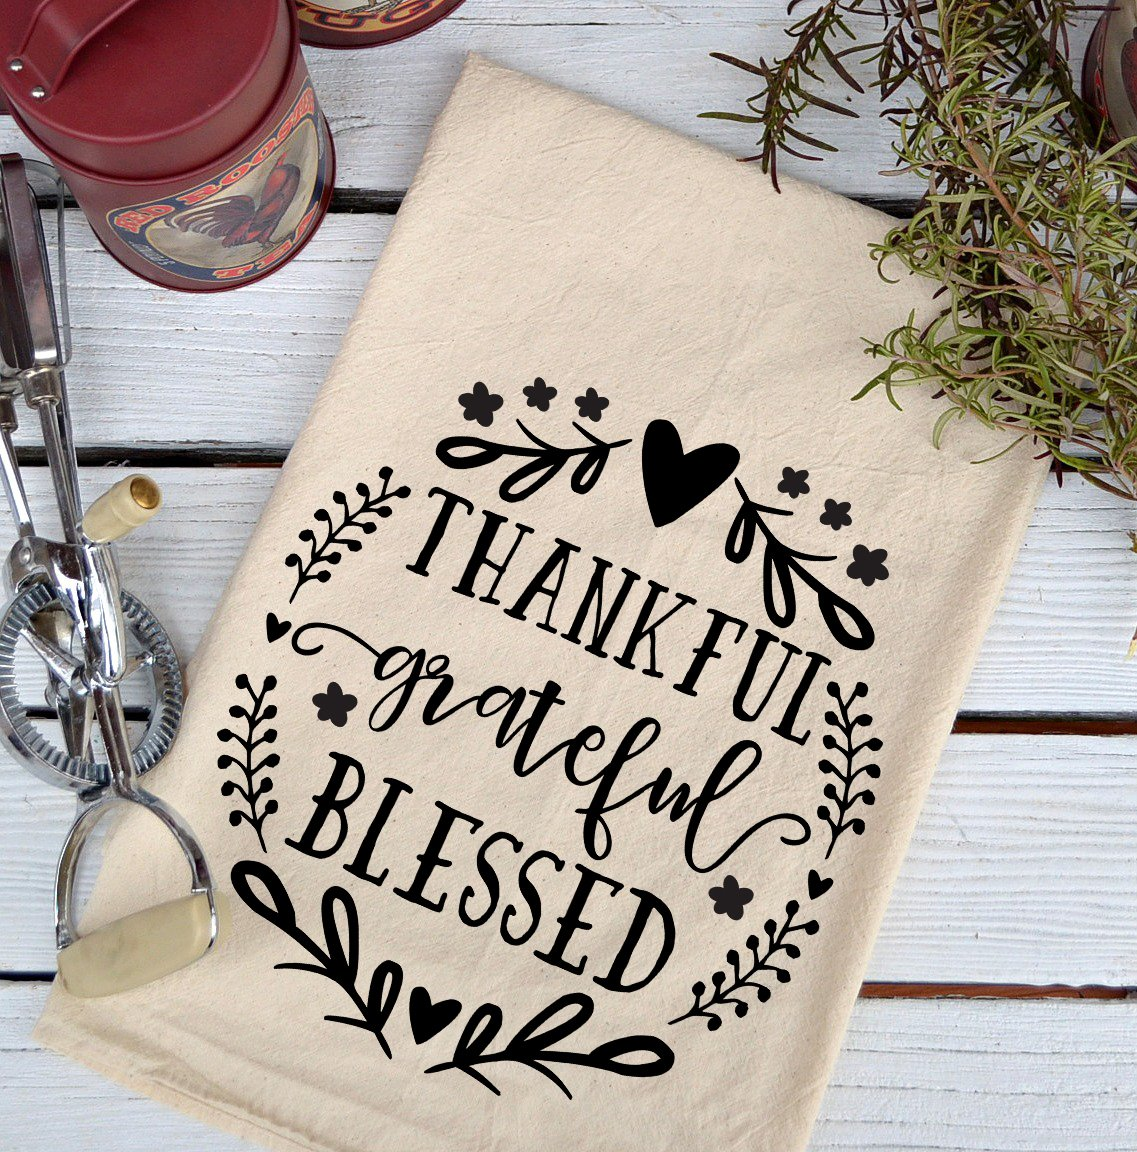 Farmhouse Natural Flour Sack Thankful Grateful Blessed Country Kitchen Towel